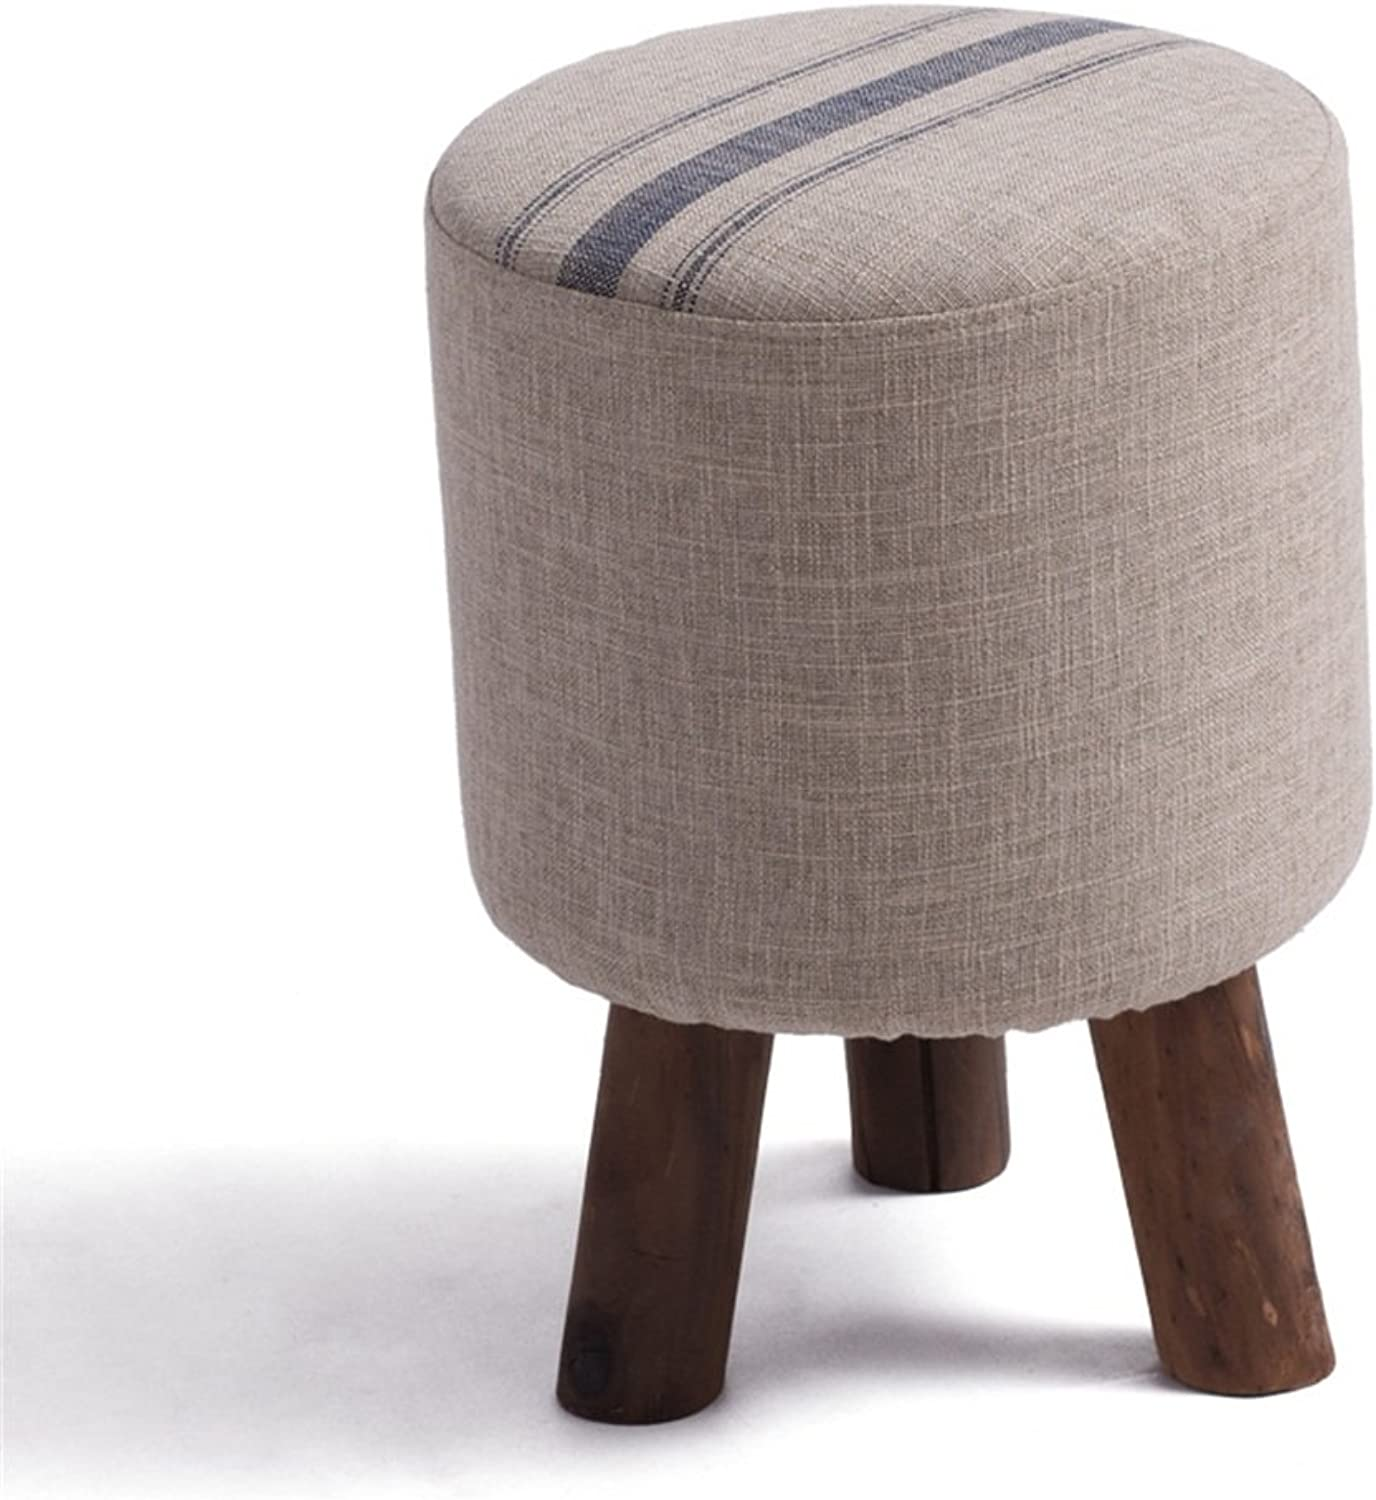 Footstools, Stool Solid Wood Stool Padded Footstool Round and Detachable Linen Cover